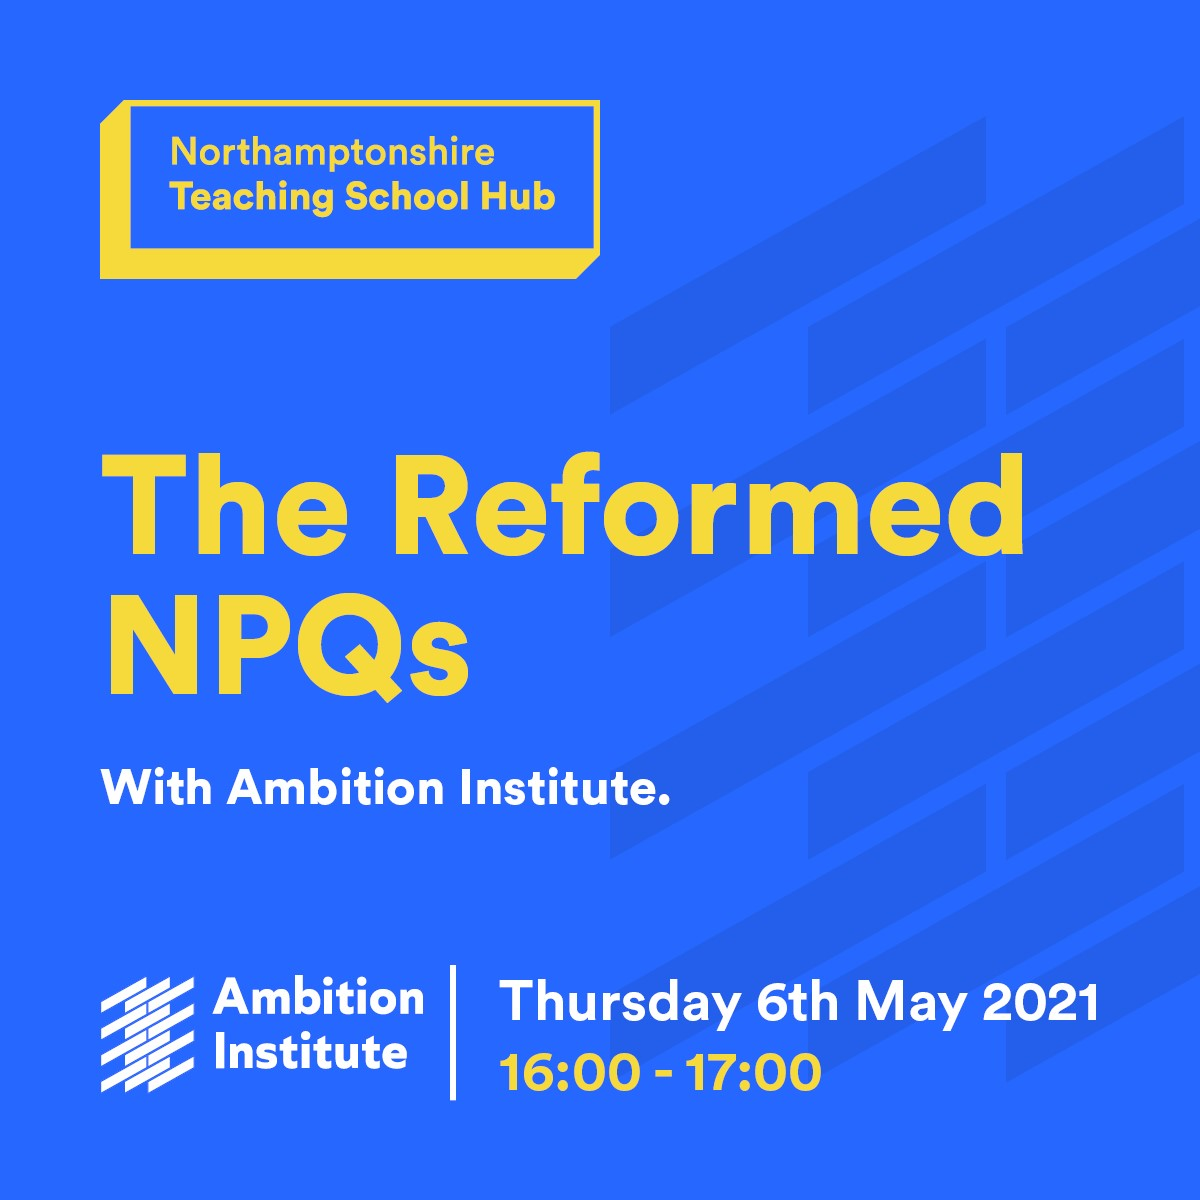 The Reformed NPQs